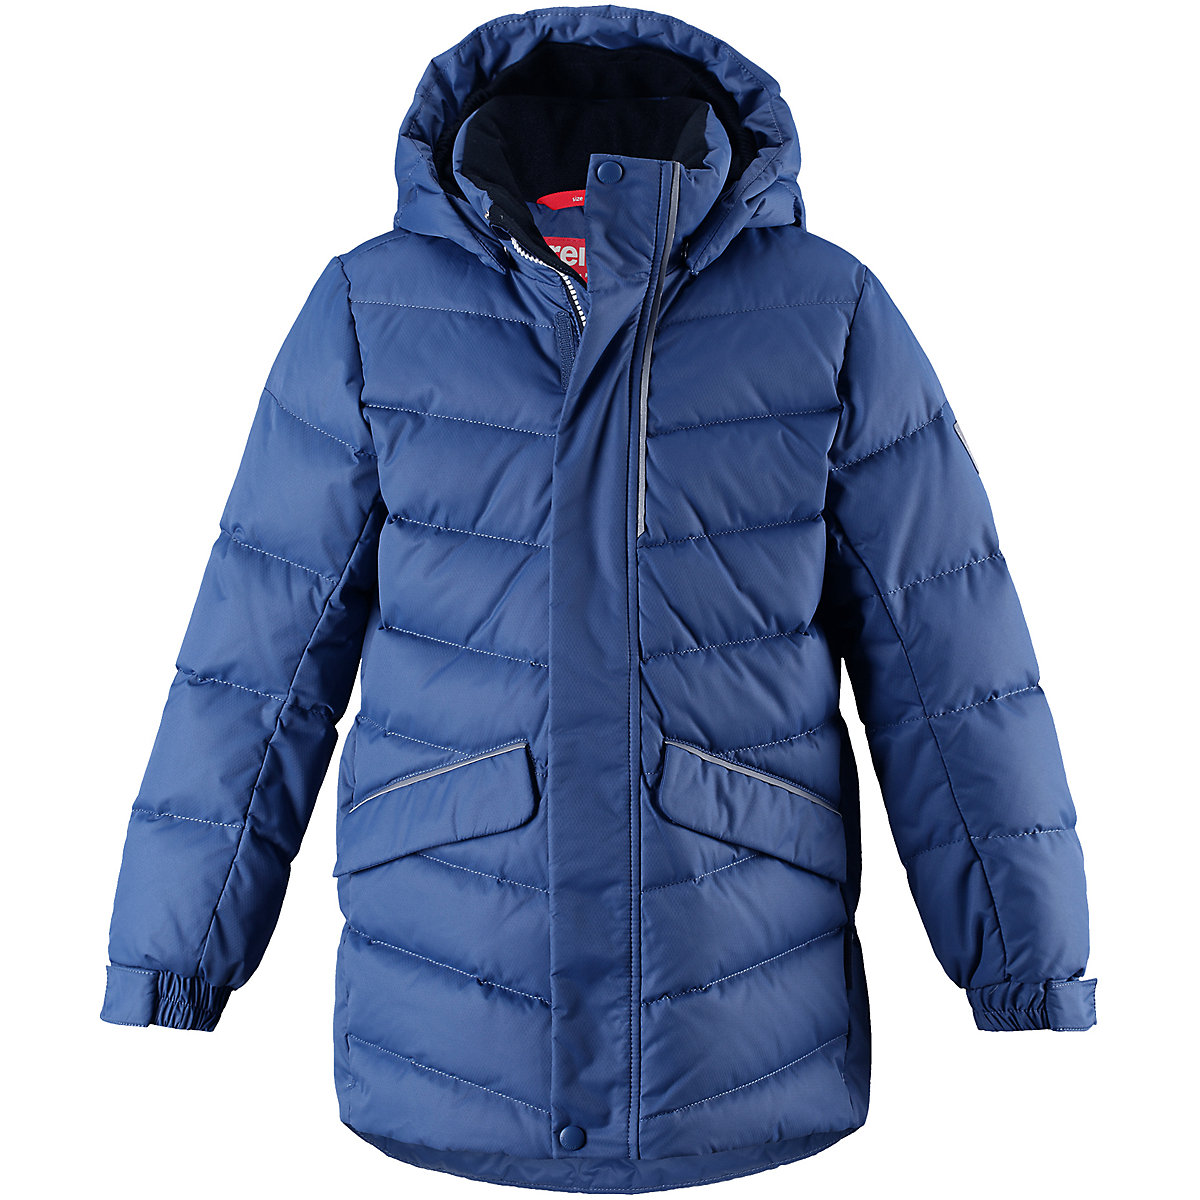 REIMA Jackets 8689392 for boys polyester winter  fur clothes boy reima jackets 8688821 for boys polyester winter fur clothes boy